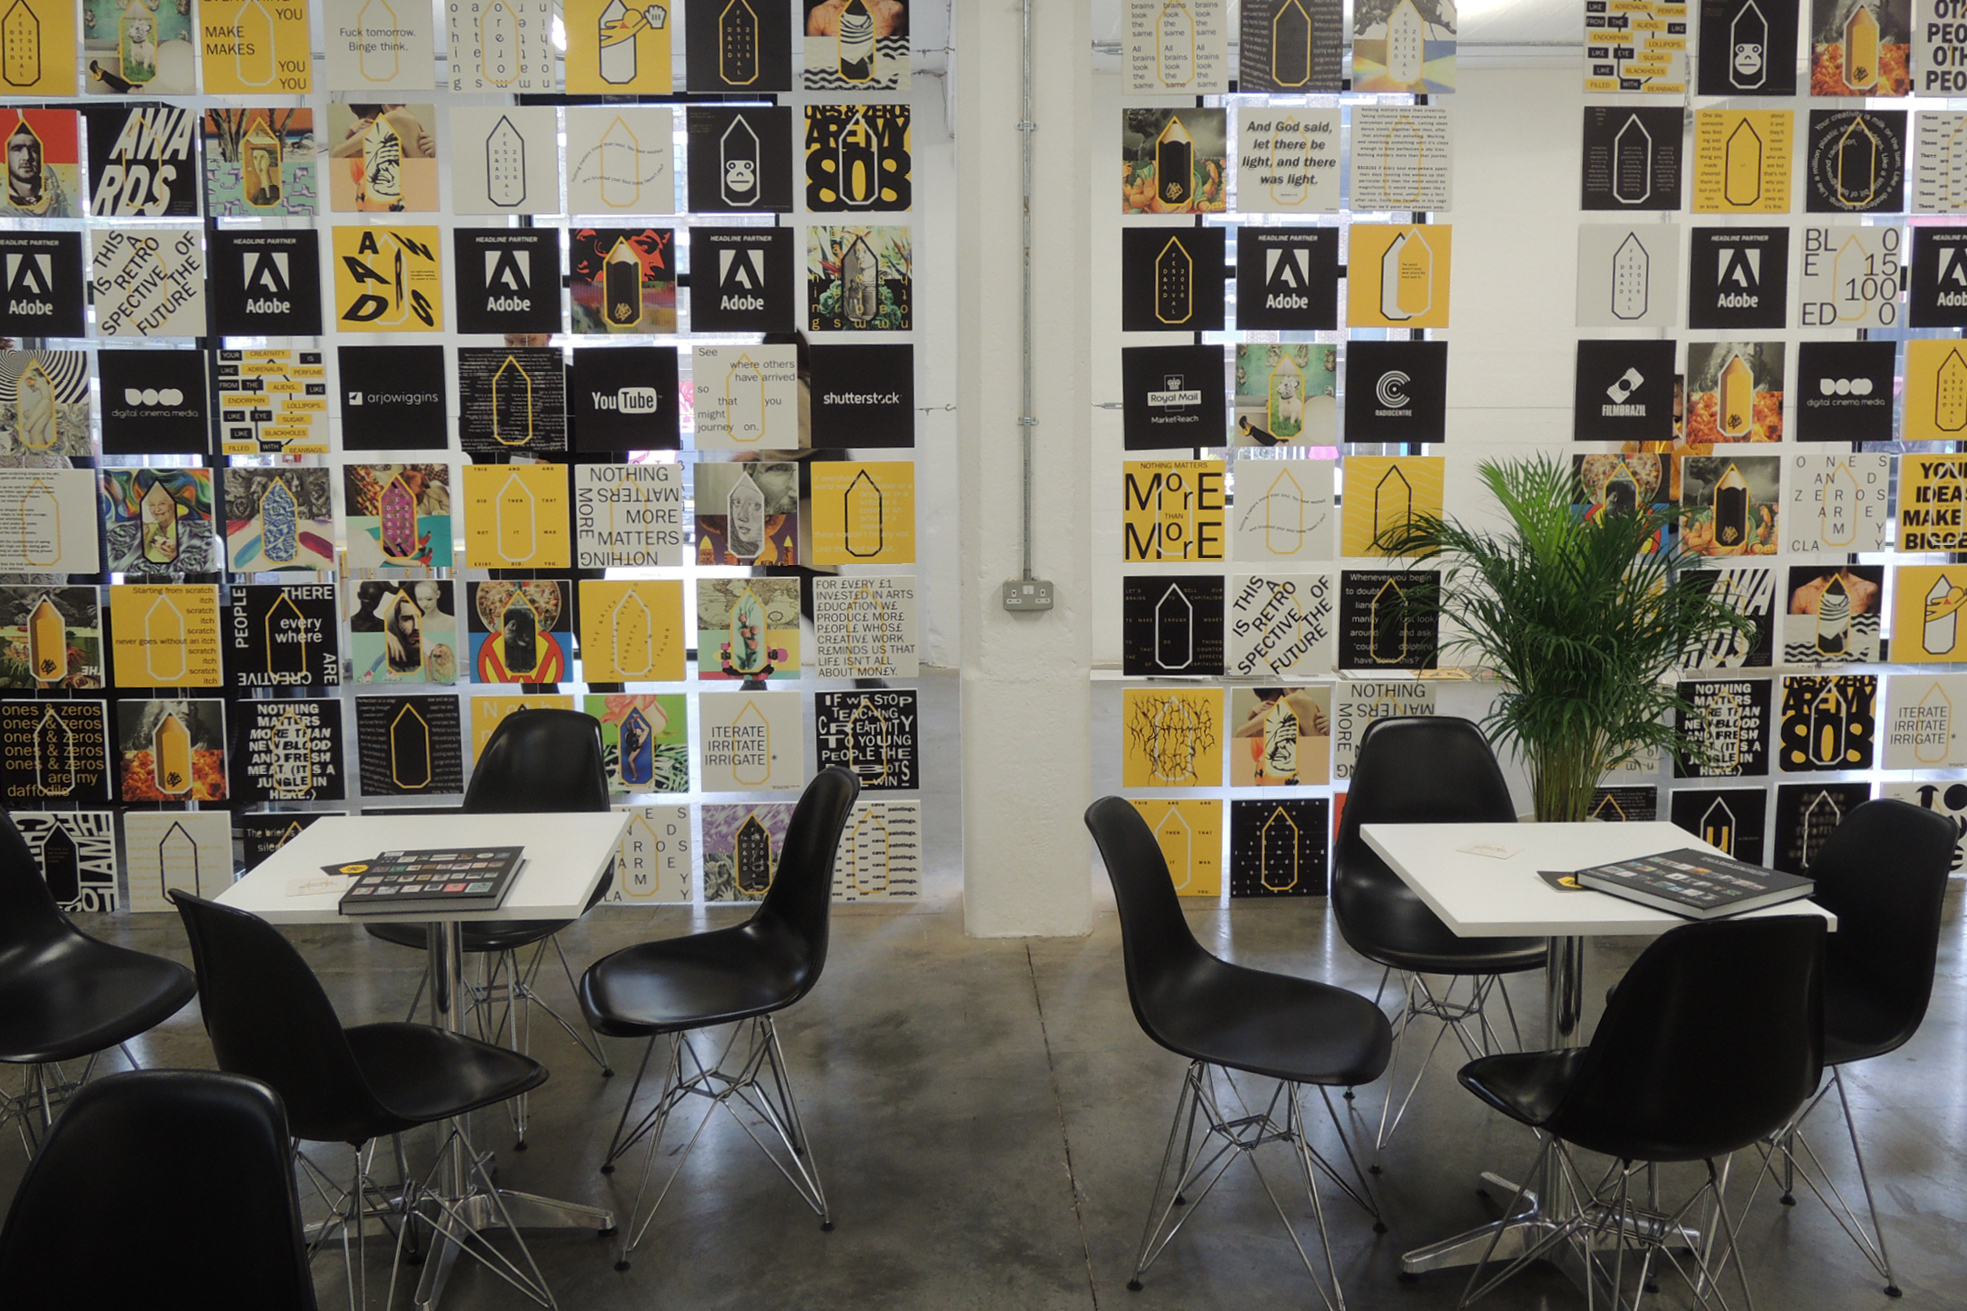 whwWeb_About_whw_Activities_UK_D&AD Judging_Lobby Panels.jpg